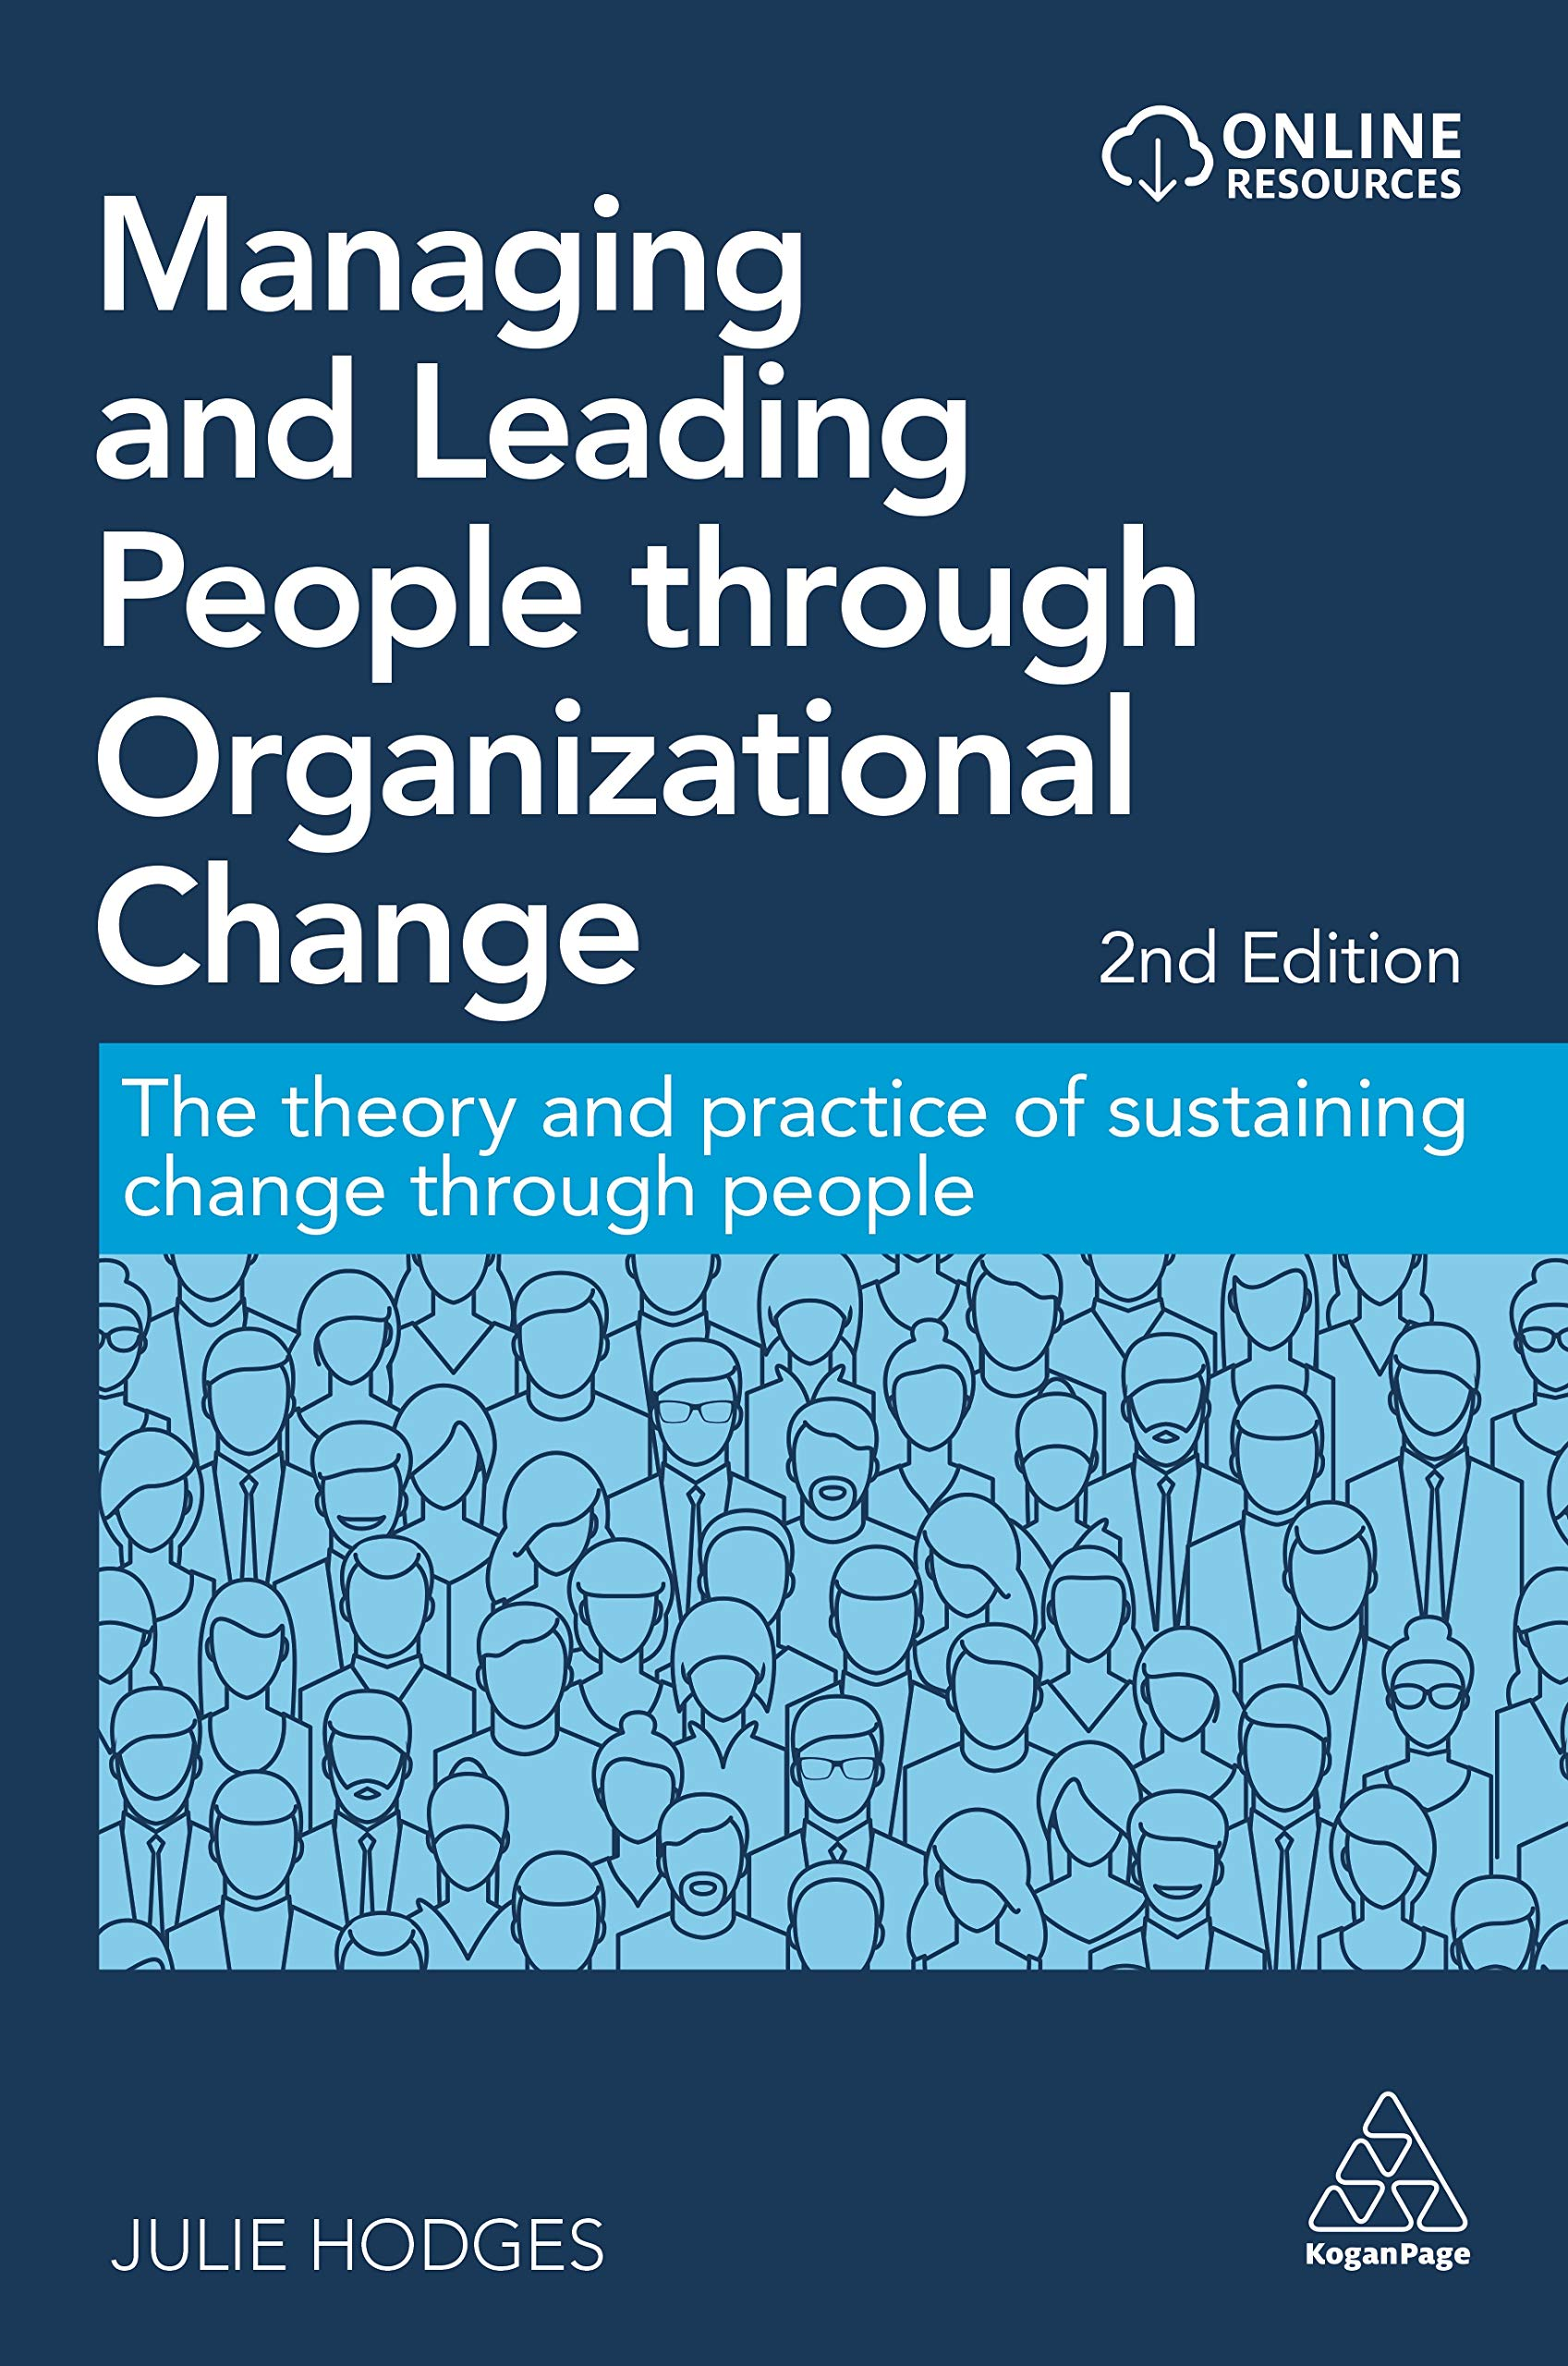 Managing and Leading People Through Organizational Change : The Theory and Practice of Sustaining Change Through People